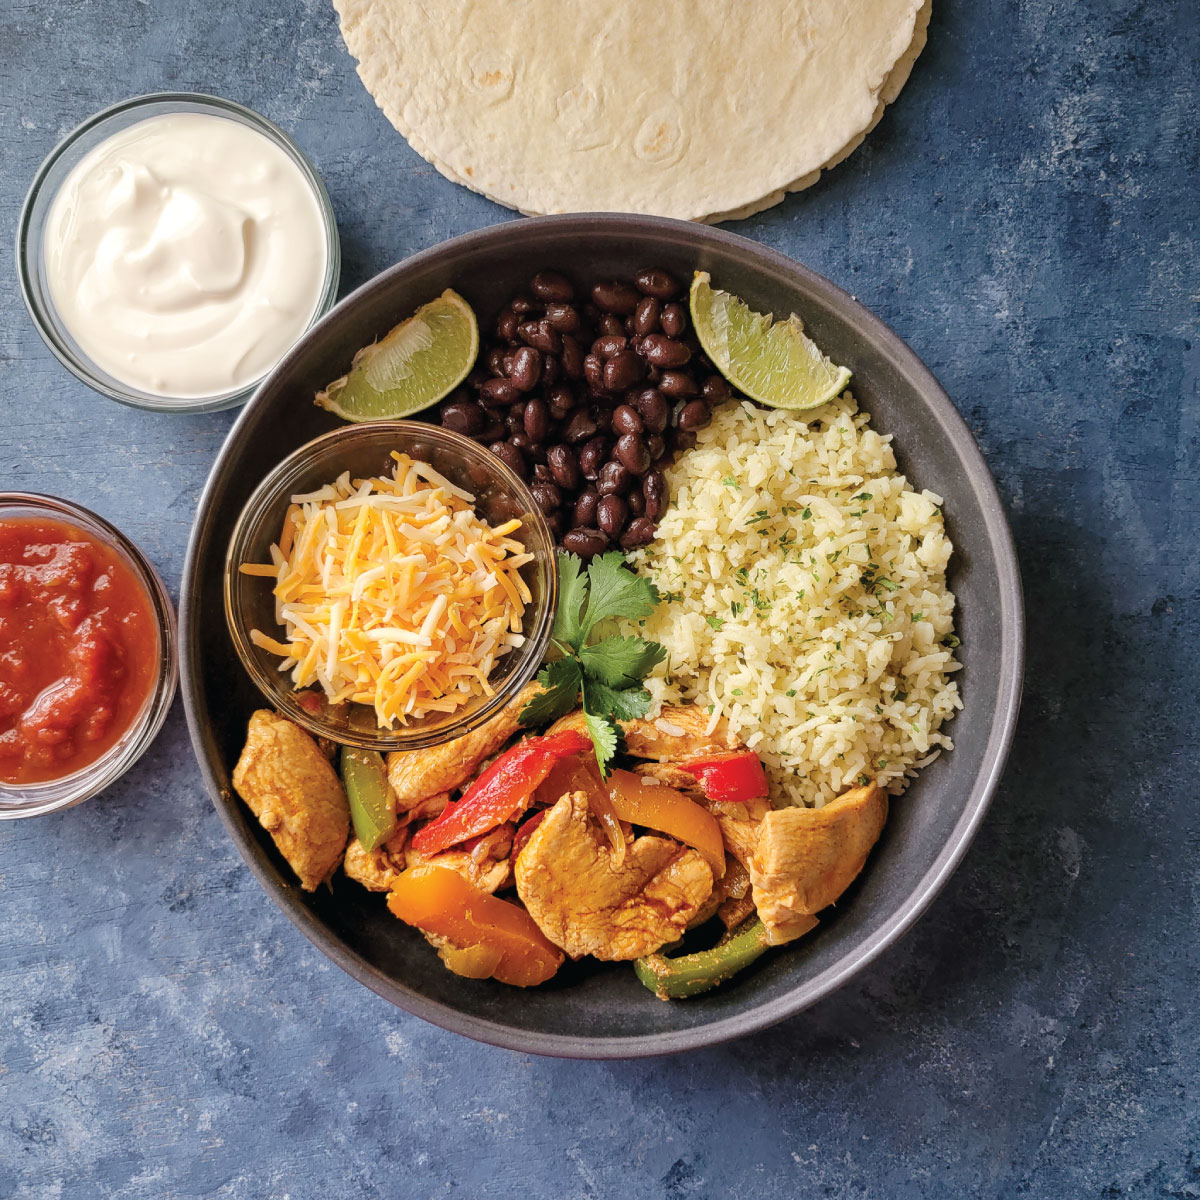 A dinner bowl with chicken fajita filling, rice, beans and cheese. Salsa and sour cream in side dishes.